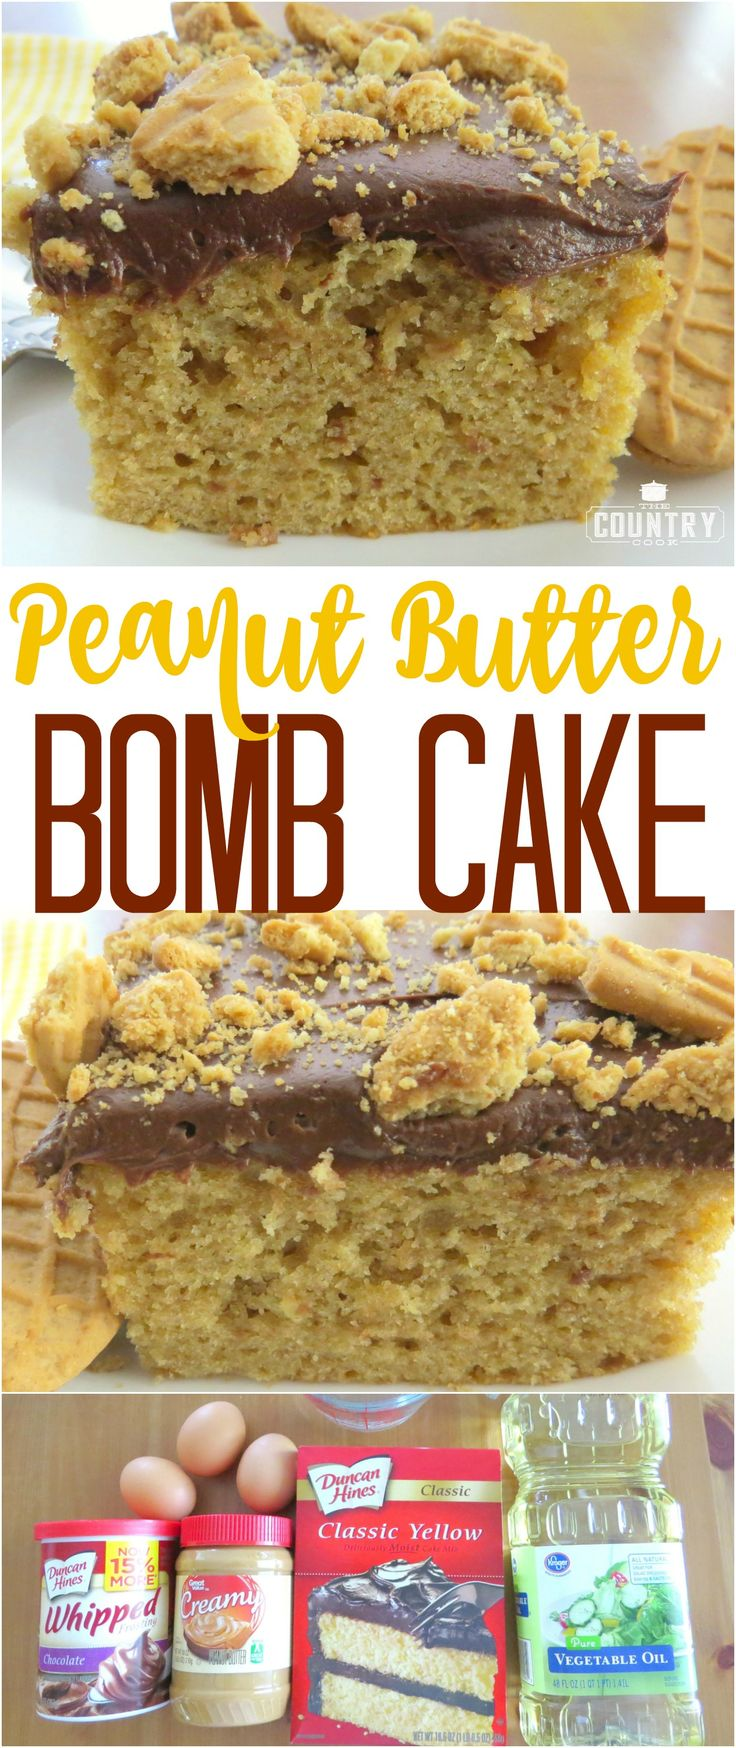 Best 10+ Box cake recipes ideas on Pinterest | Box cake mixes, Box ...